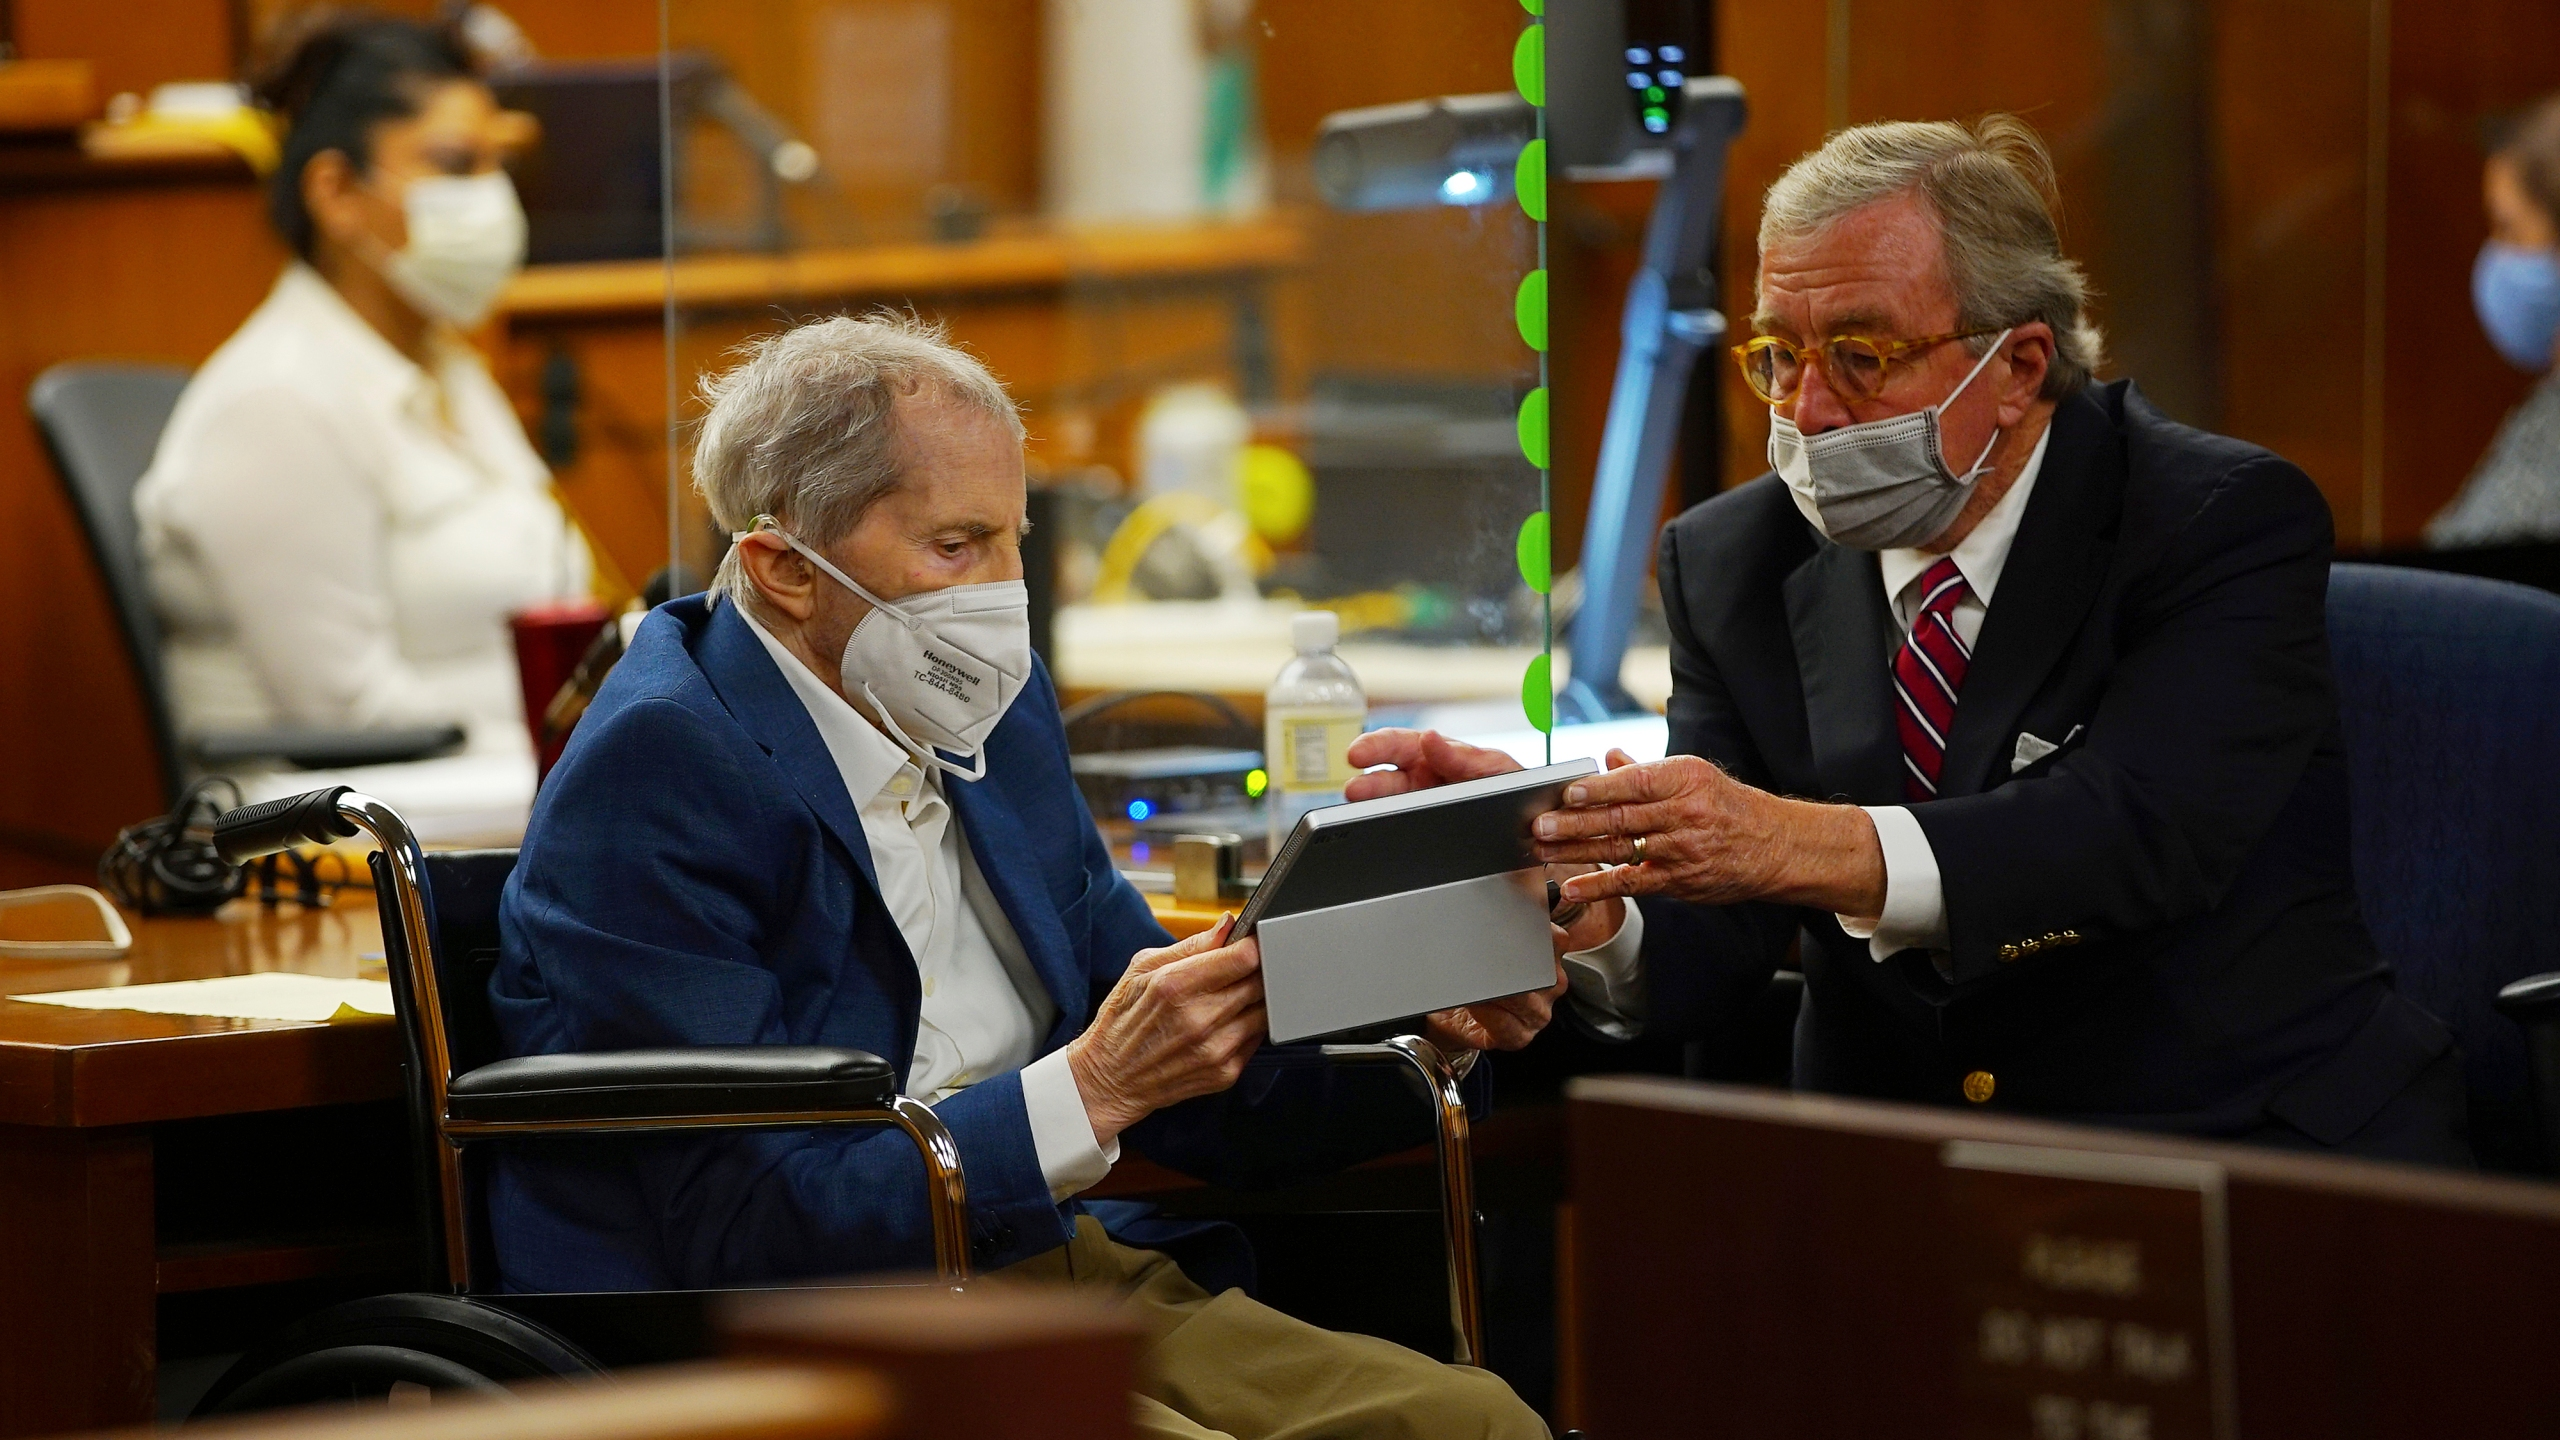 Defense attorney Dick DeGuerin, right, gives Robert Durst a device to read the real time spoken script as he appears in a courtroom as Judge Mark E. Windham gives last instructions to jurors before attorneys begin opening statements at the Los Angeles County Superior Court on May 18, 2021. (Al Seib/Los Angeles Times)